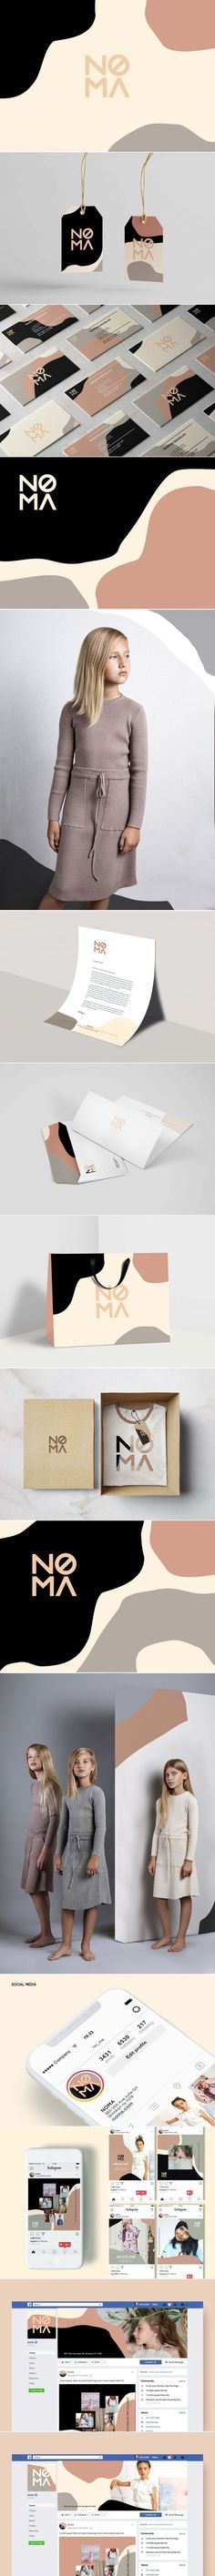 NOMA – Fivestar Branding Agency - What is fashion design first? Fashion design is a concept that can be widely used, which includes the necessary features of design in order to create clothes or vario Logo Branding, Branding Agency, Business Branding, Business Card Design, Brand Identity Design, Graphic Design Branding, Design Agency, Inspiration Logo Design, What Is Fashion Designing